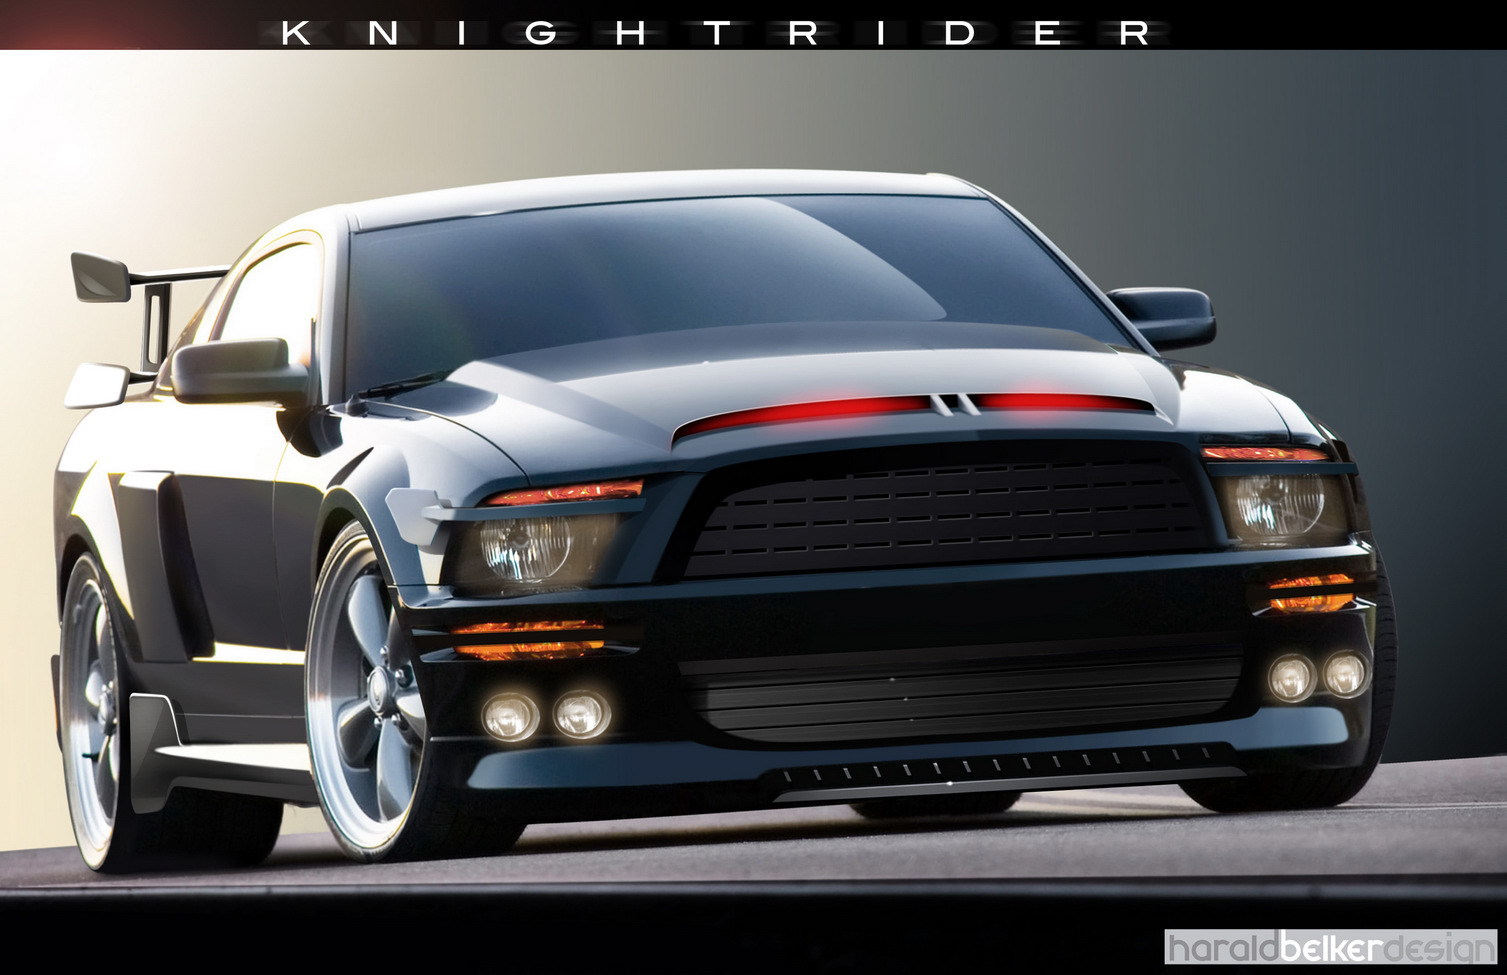 Knight Rider images KITT 3000 Wallpaper HD wallpaper and 1507x975